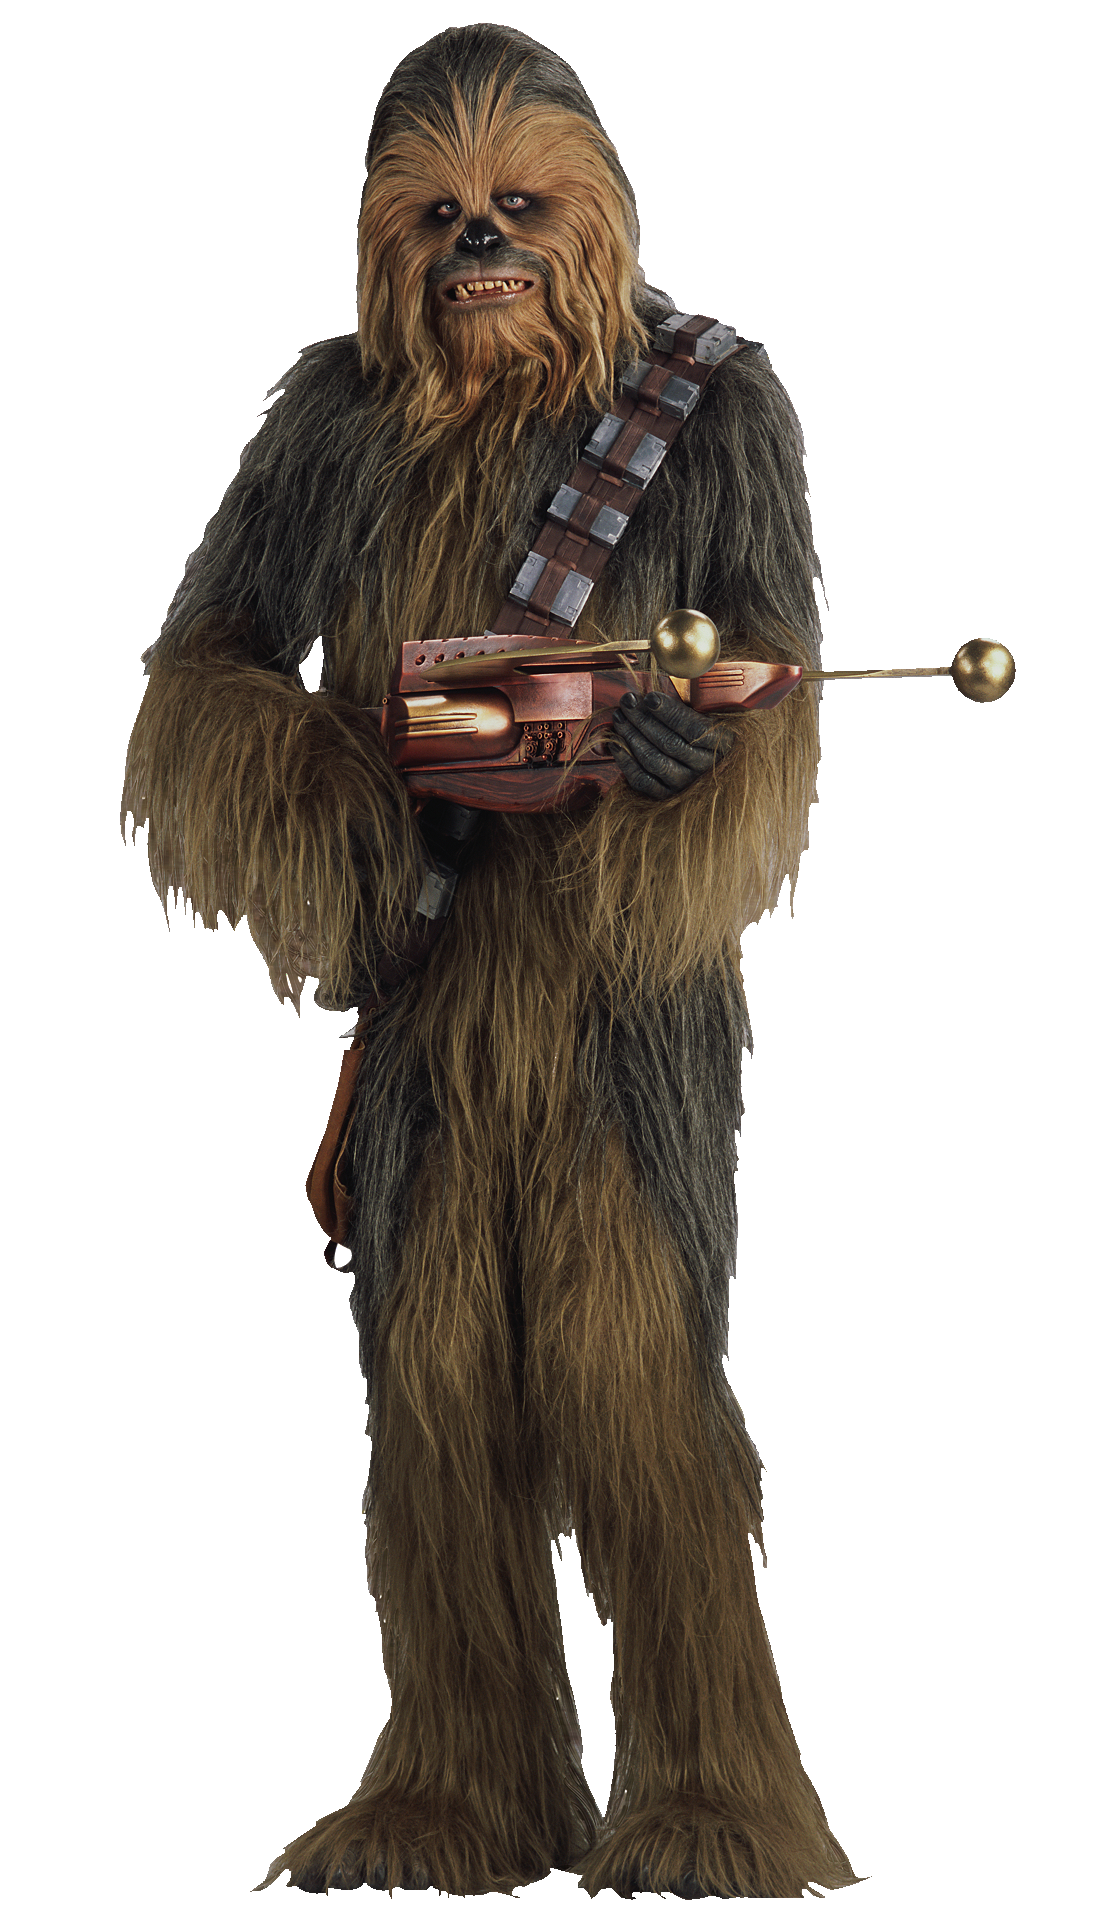 Star Wars Chewbacca PNG Image   PurePNG transparent CC0 PNG 1100x1920